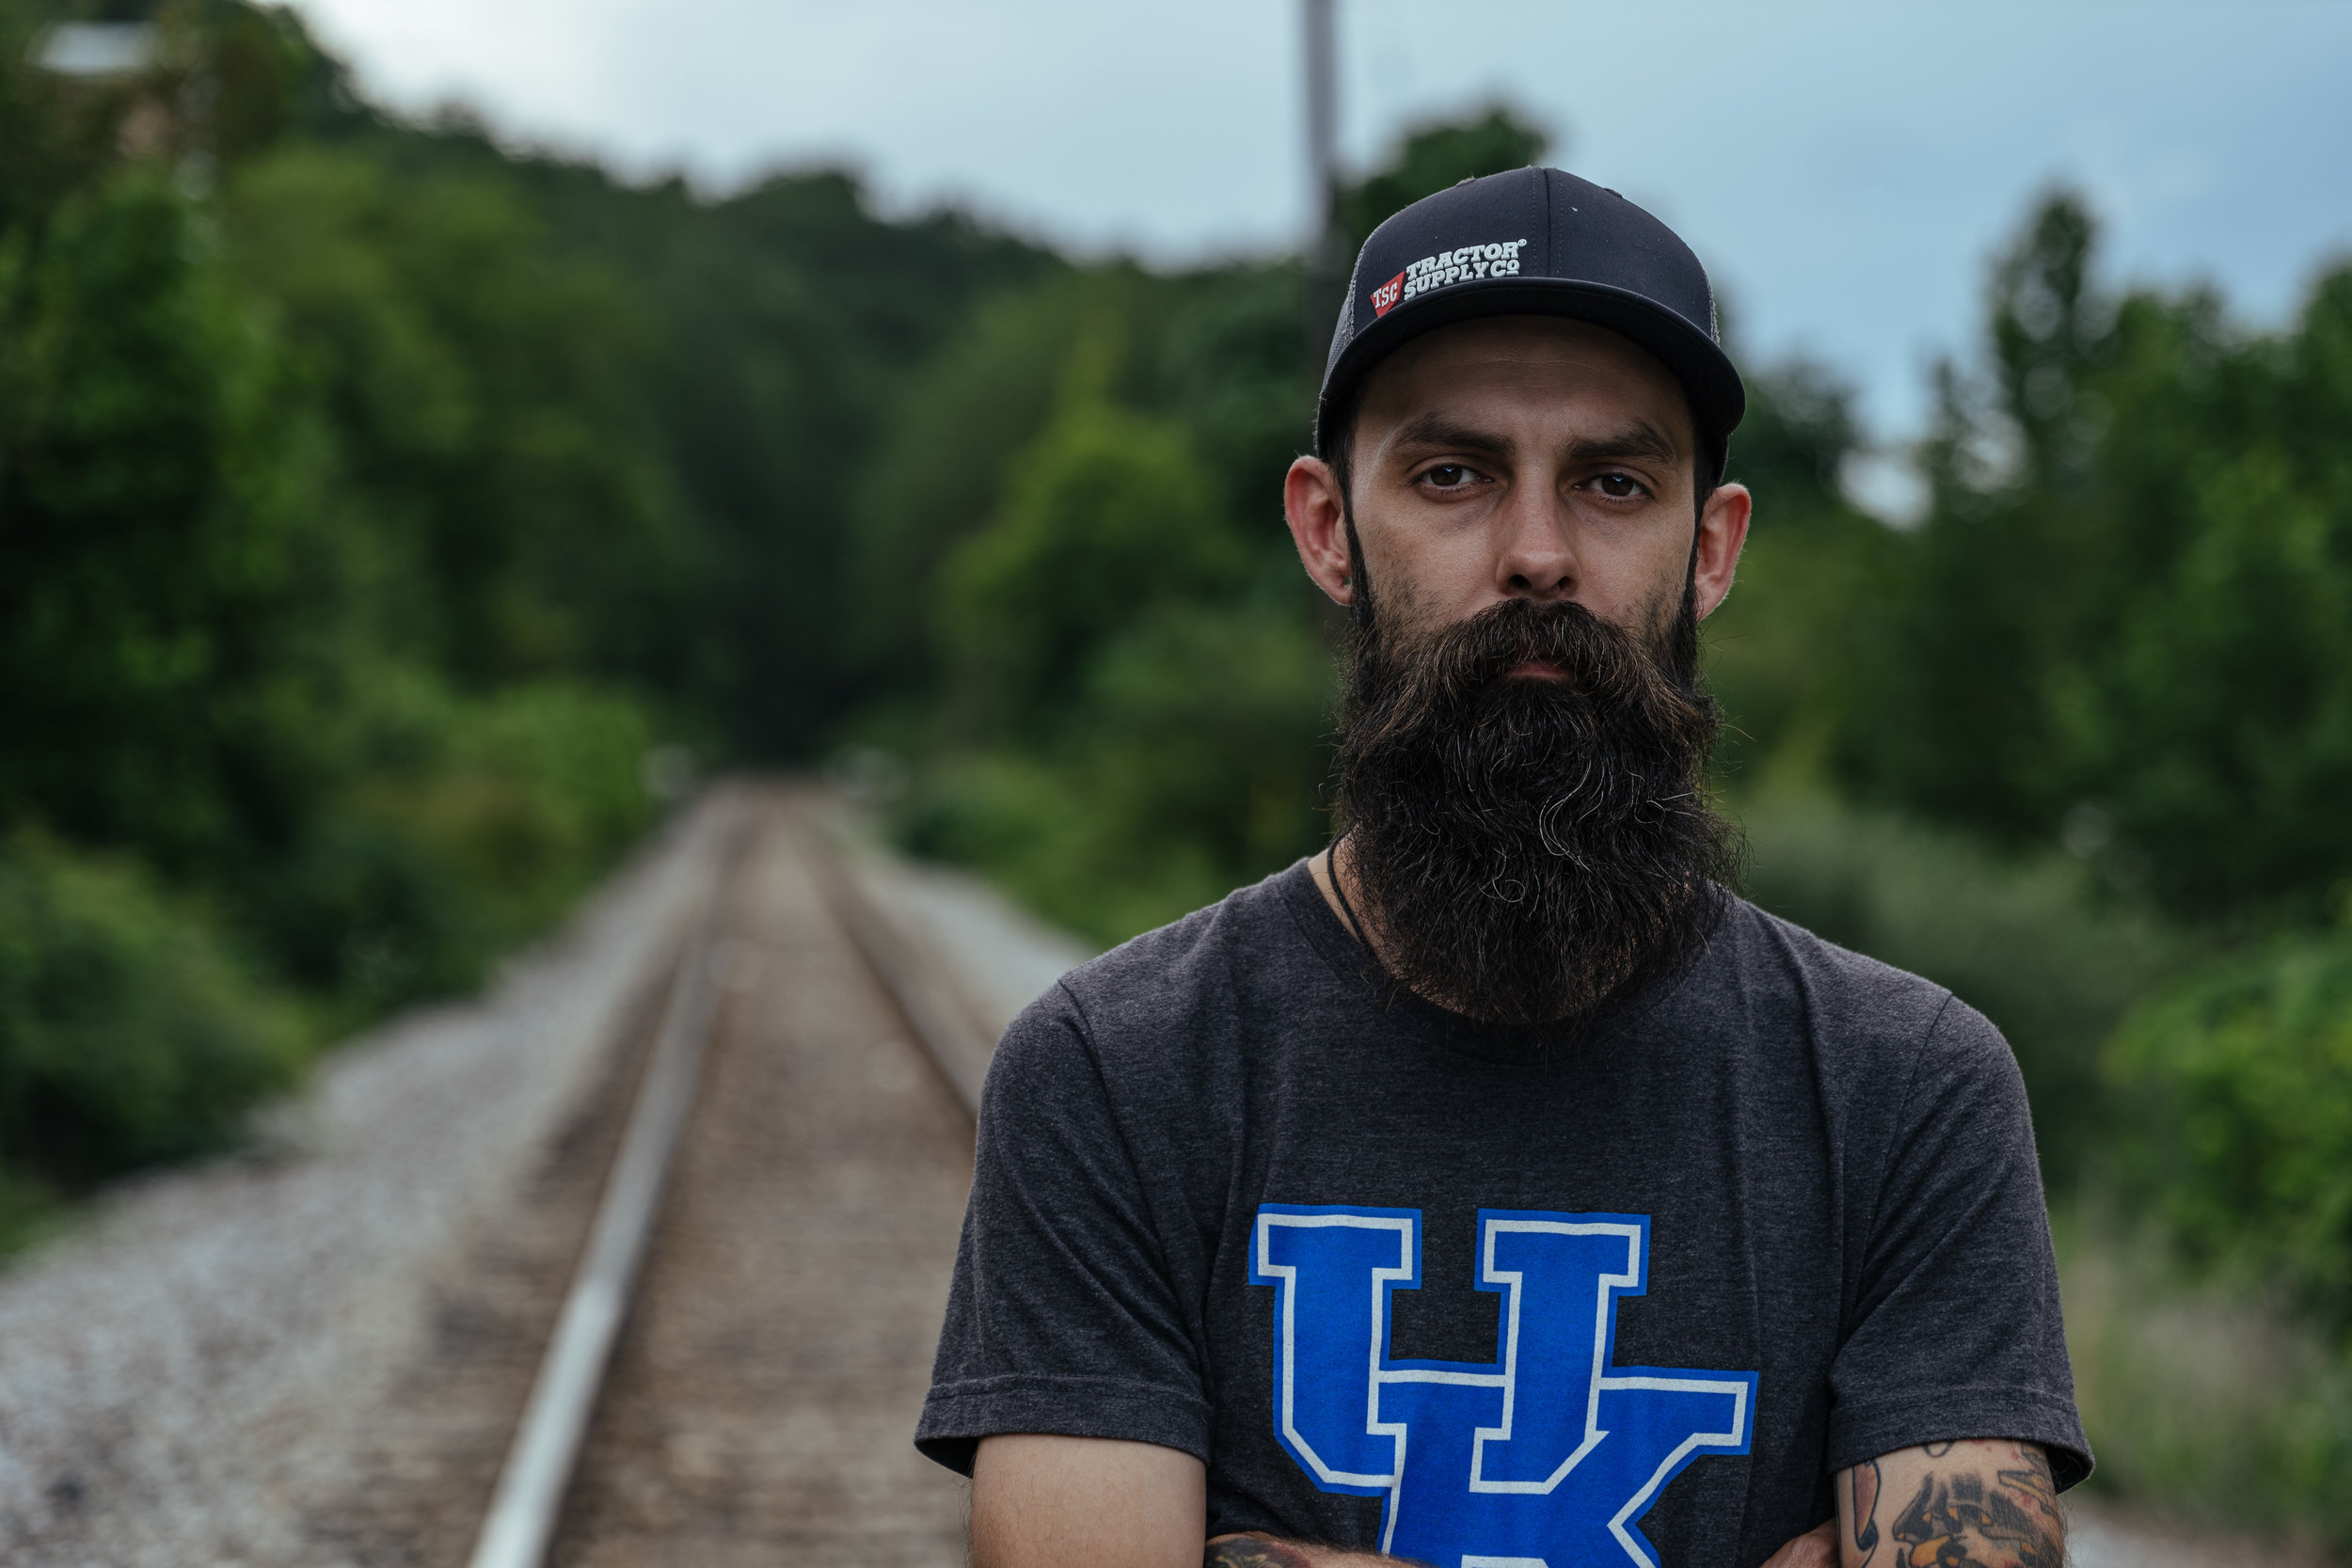 """The Striking Kentucky Coal Miners Who Stood Up and Stopped a Train - I recently did a photo series for """"100 Days in Appalachia"""" on the coal miners who are waiting for wages they've already earned by blocking a train loaded with coal."""